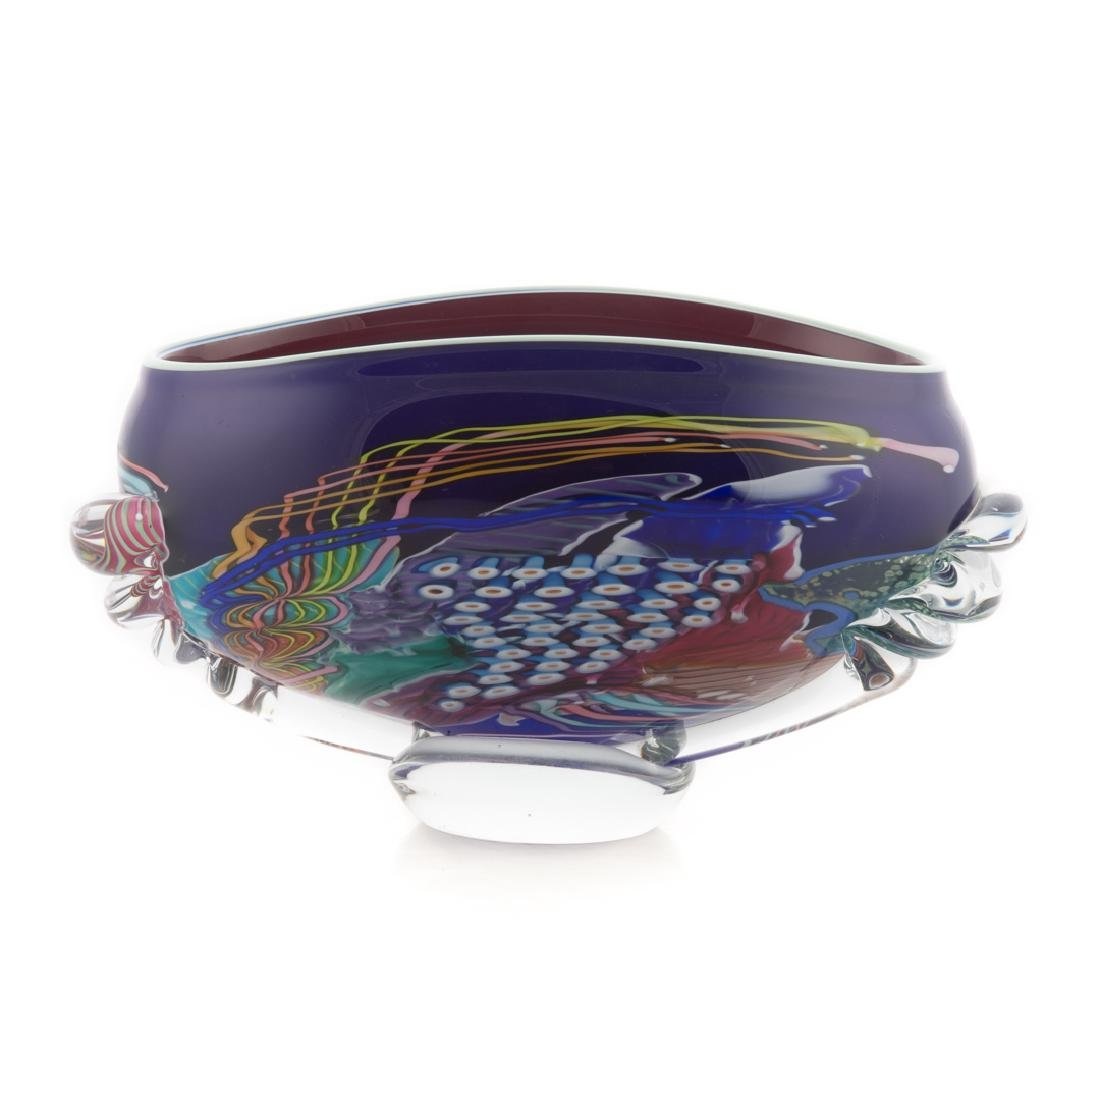 American art glass centerbowl